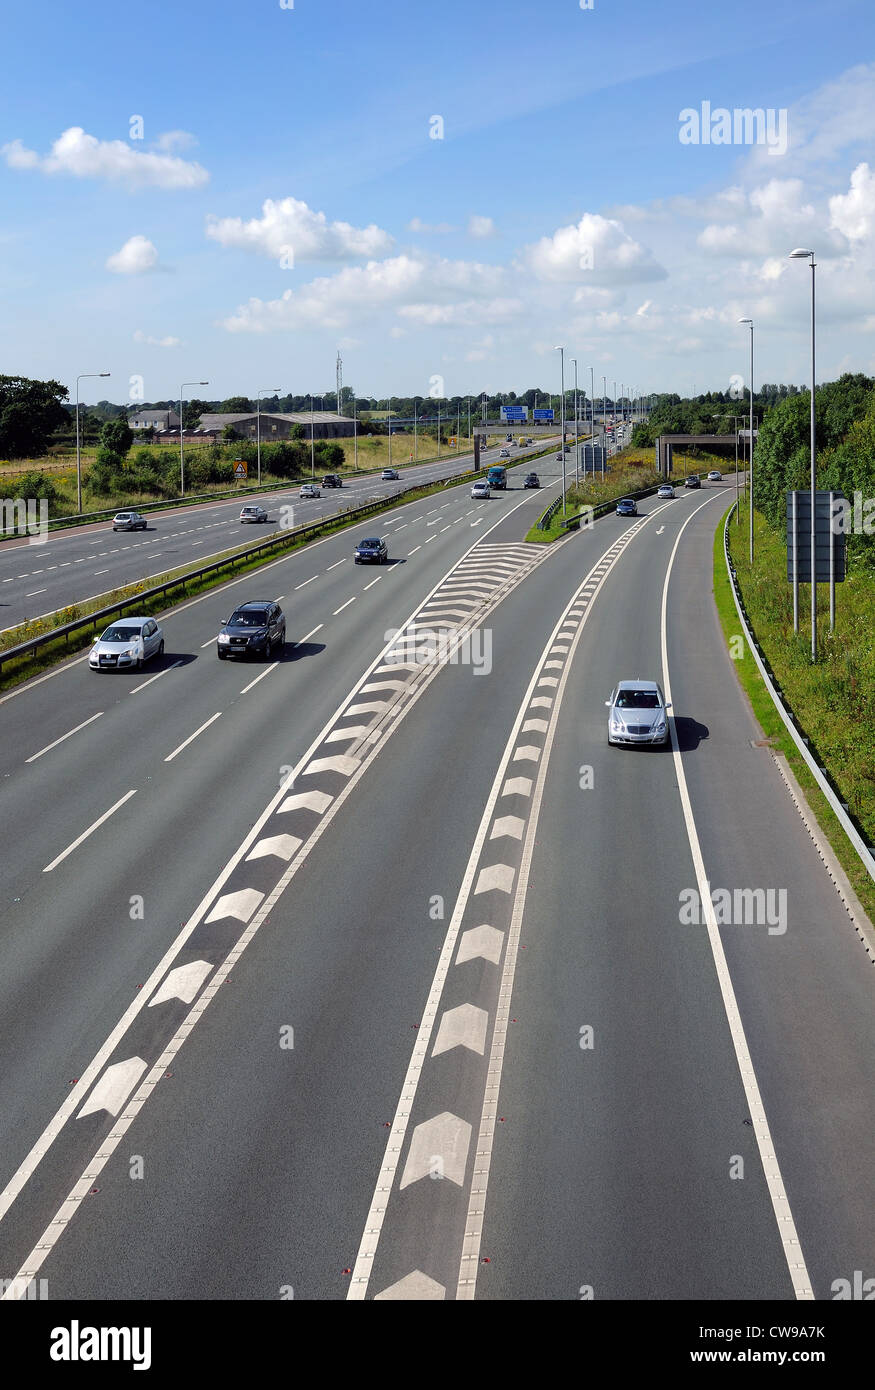 motorway with old style central reservation barrier before upgrade in safety standards - Stock Image